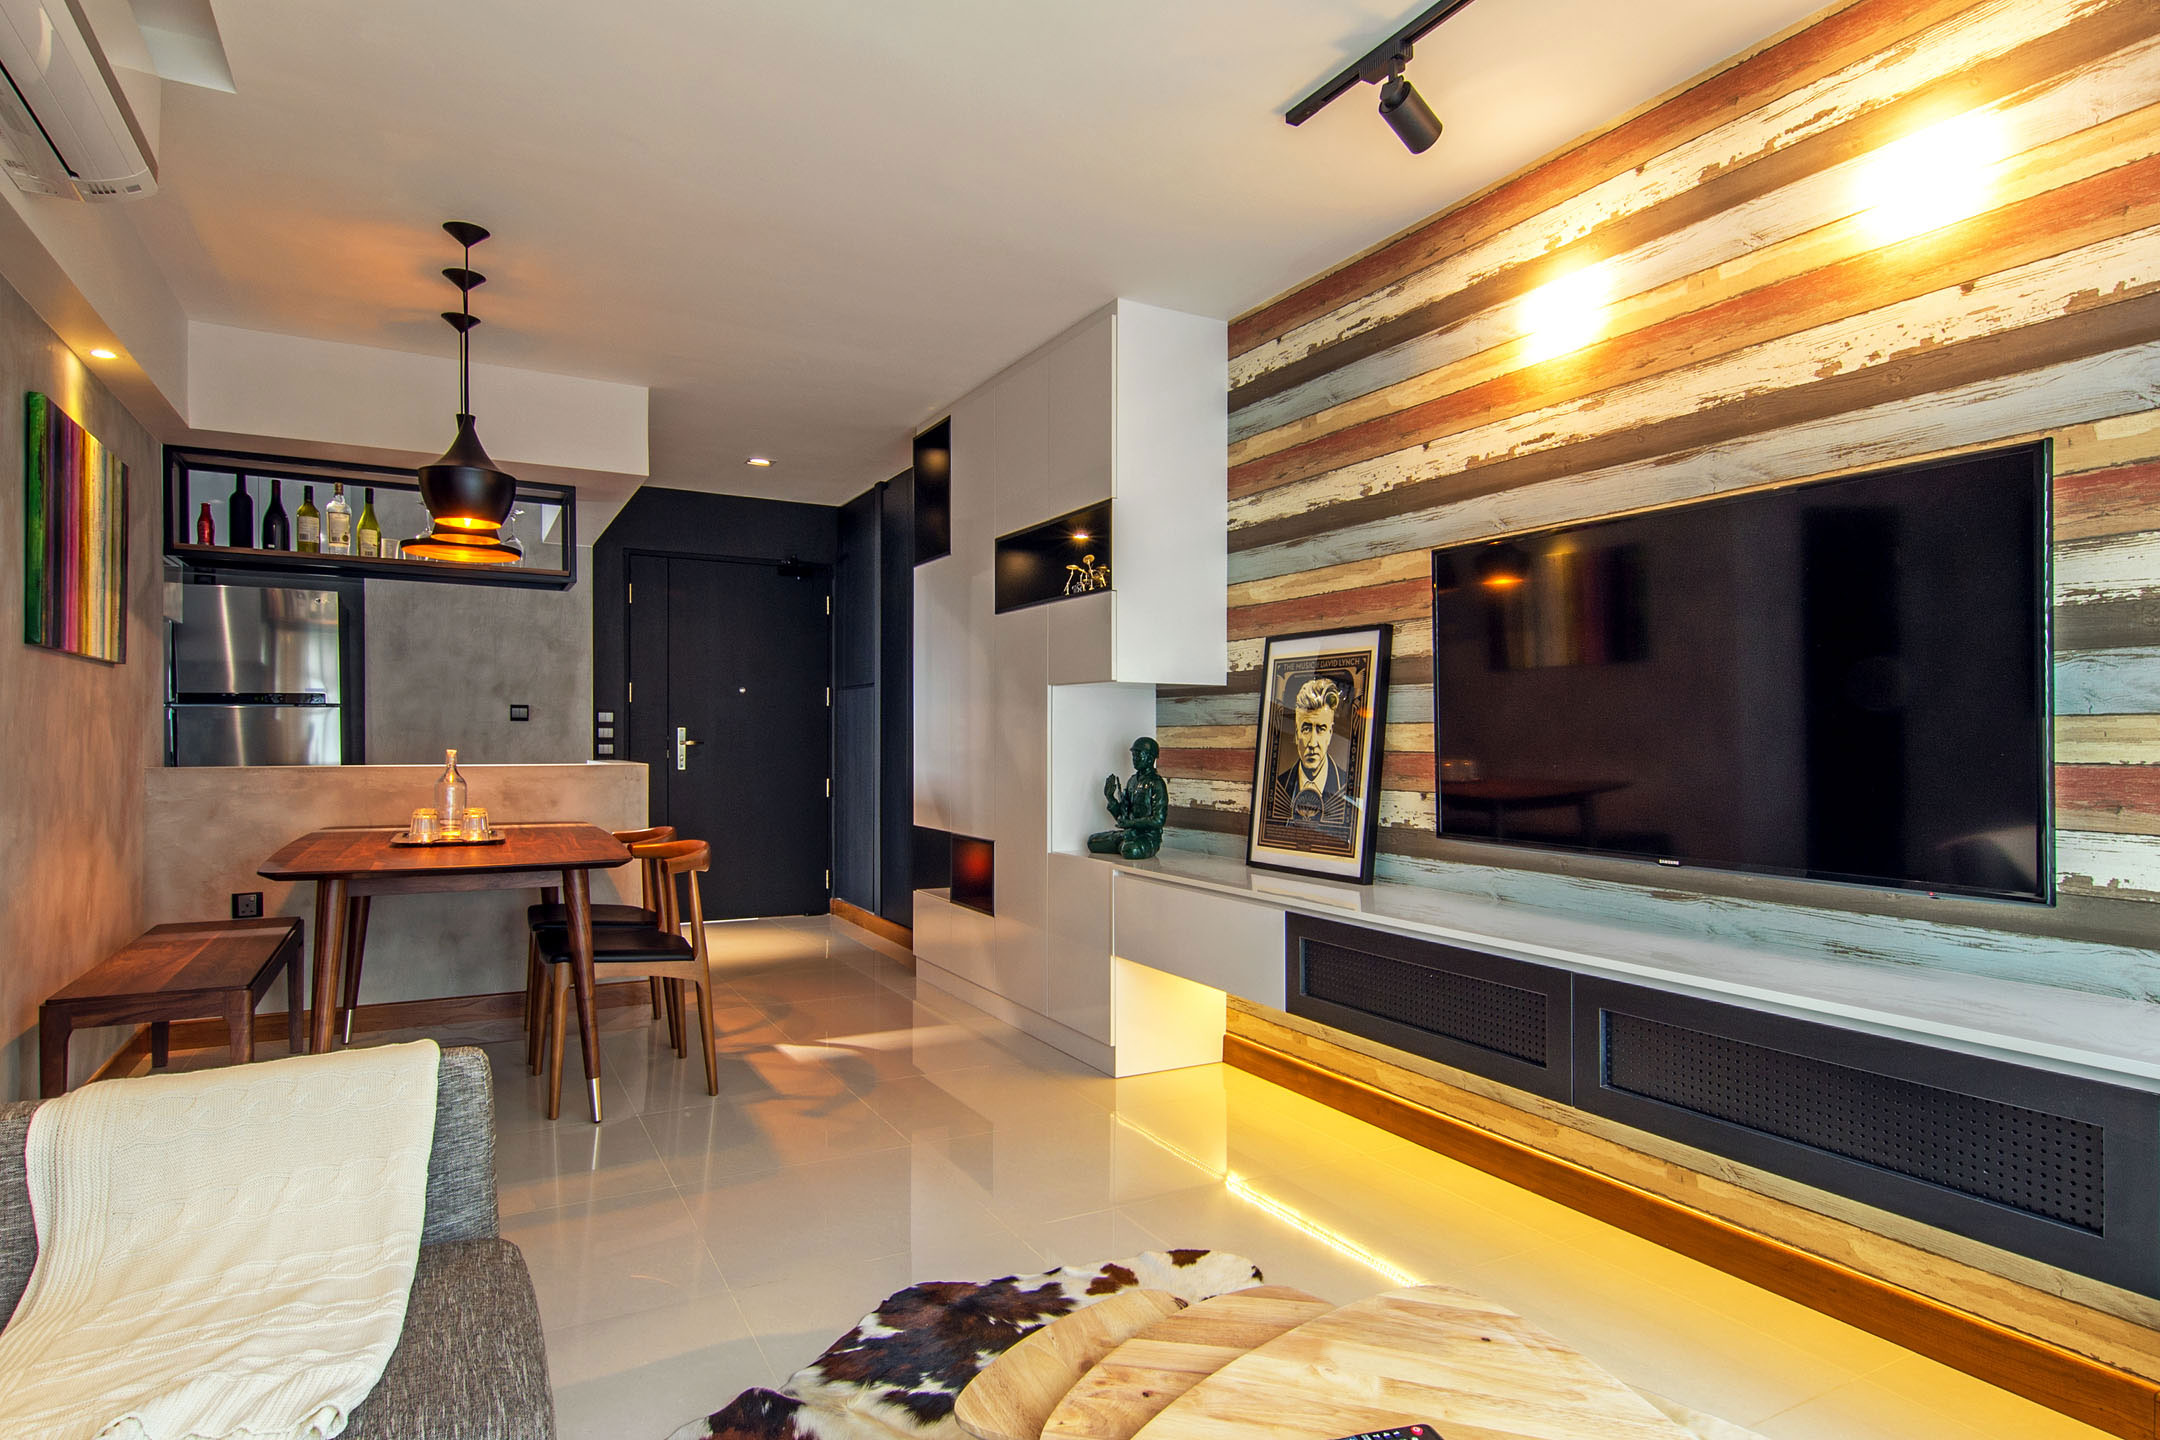 Stylish Apartment For Young Couple In Singapore By Vievva Designers 07